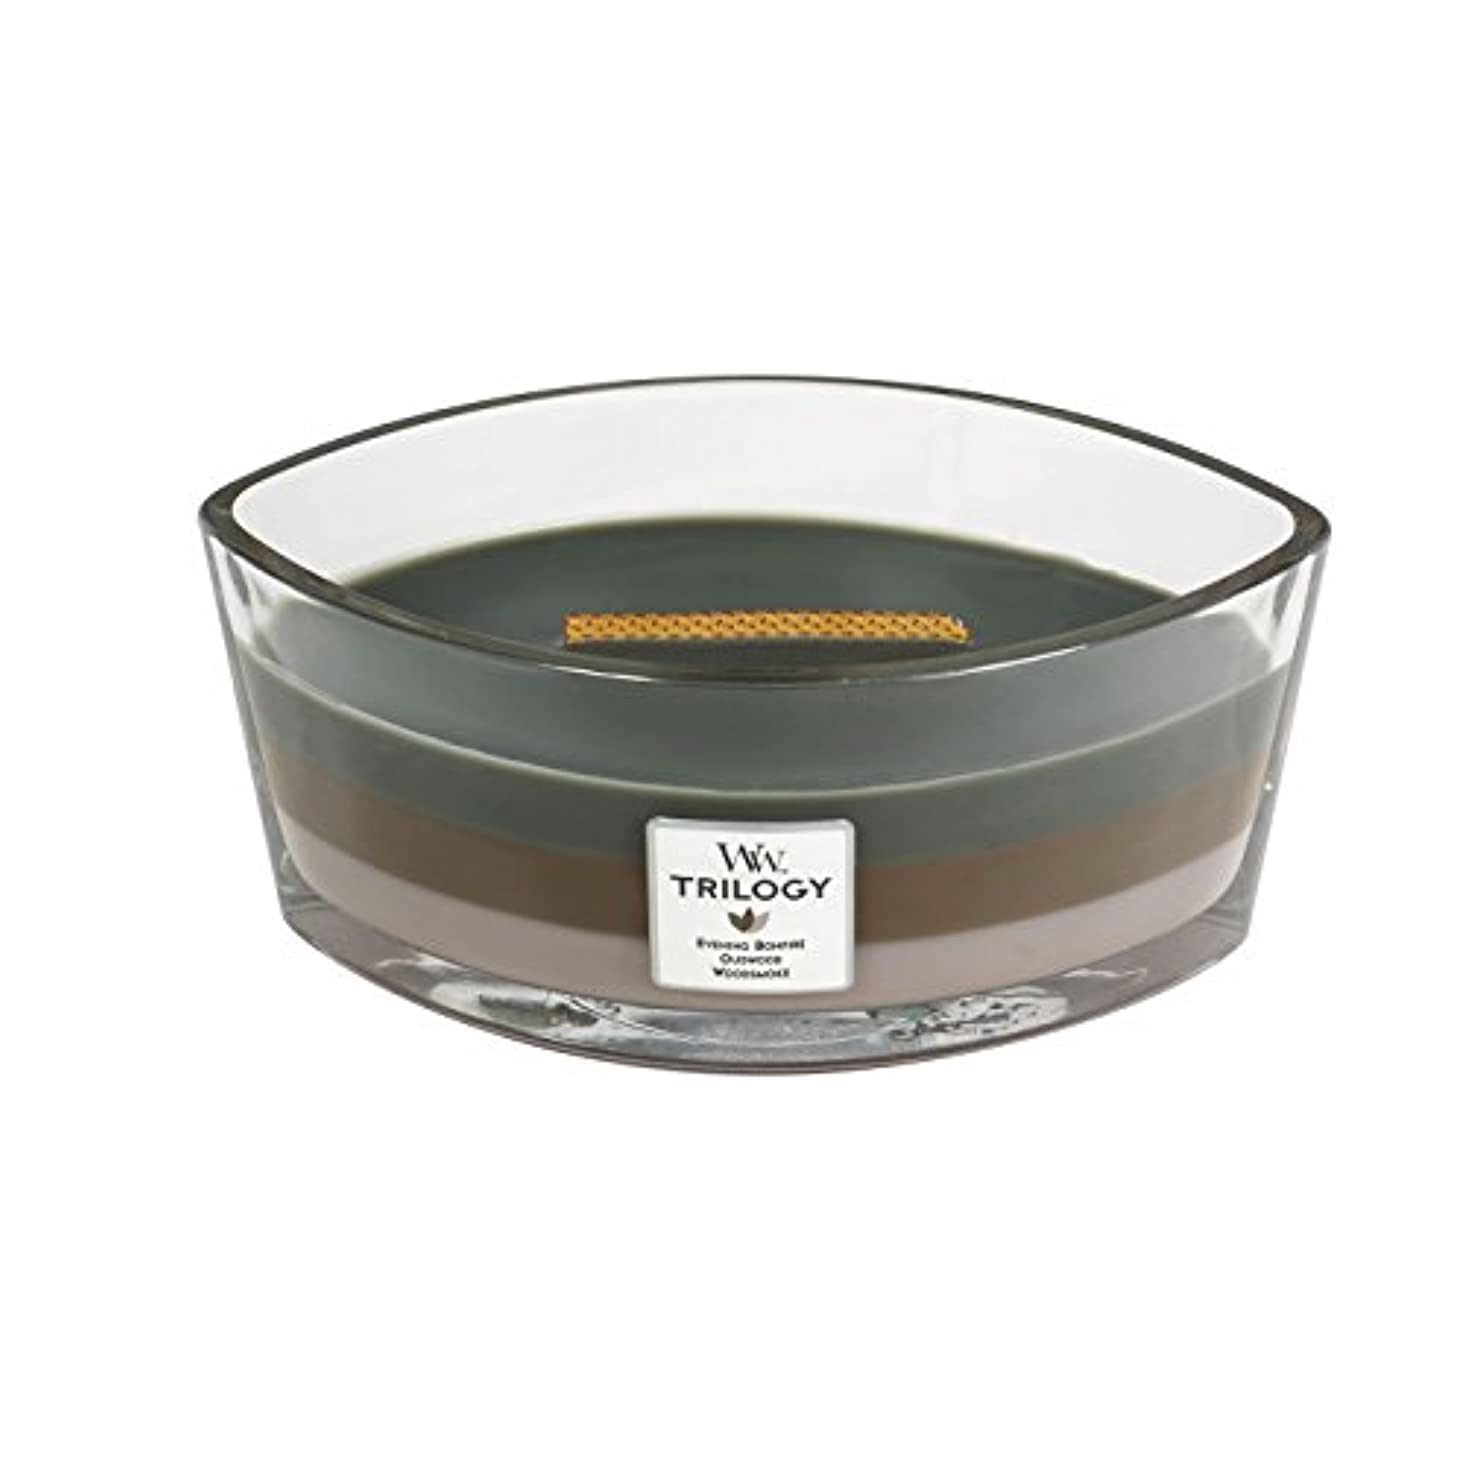 WoodWick Trilogy cosy CABIN, 3-in-1 Highly Scented Candle, Ellipse Glass Jar with Original HearthWick Flame, Large...